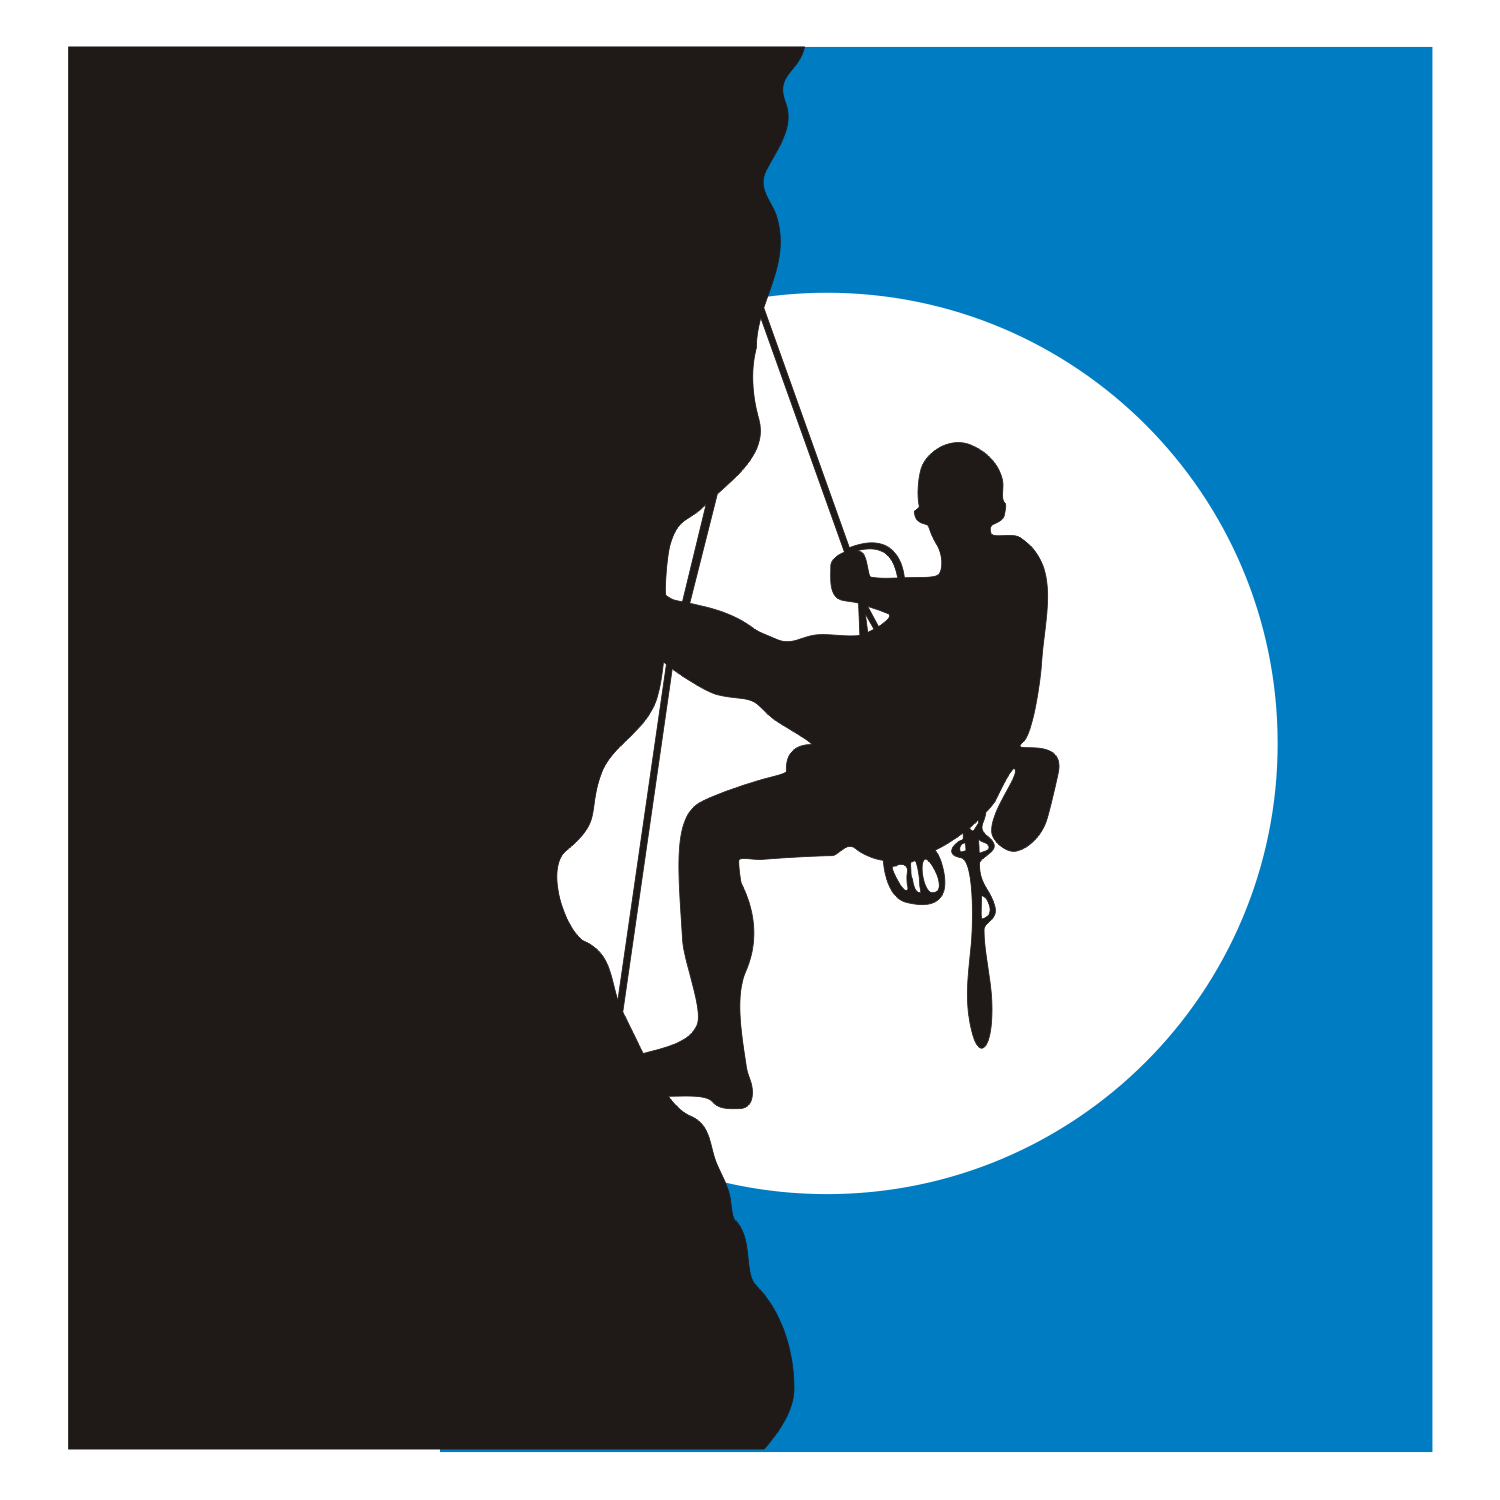 A illustration of a climber on the rock in the light of the moon